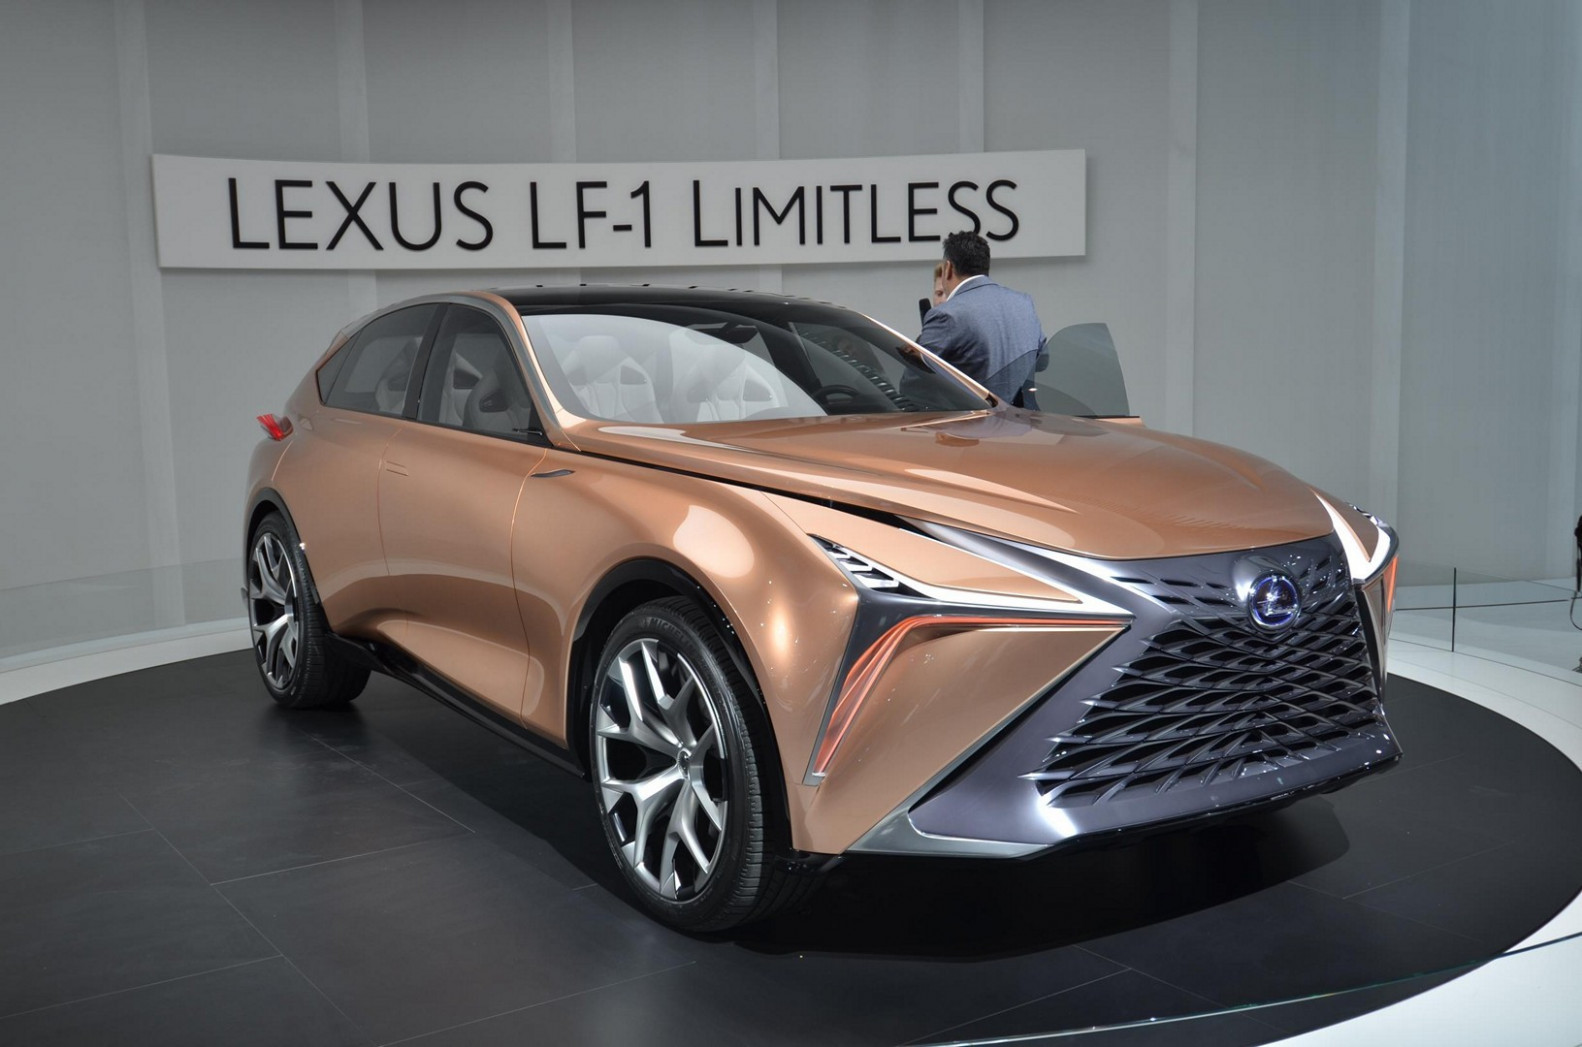 New Concept When Will The 2022 Lexus Be Available